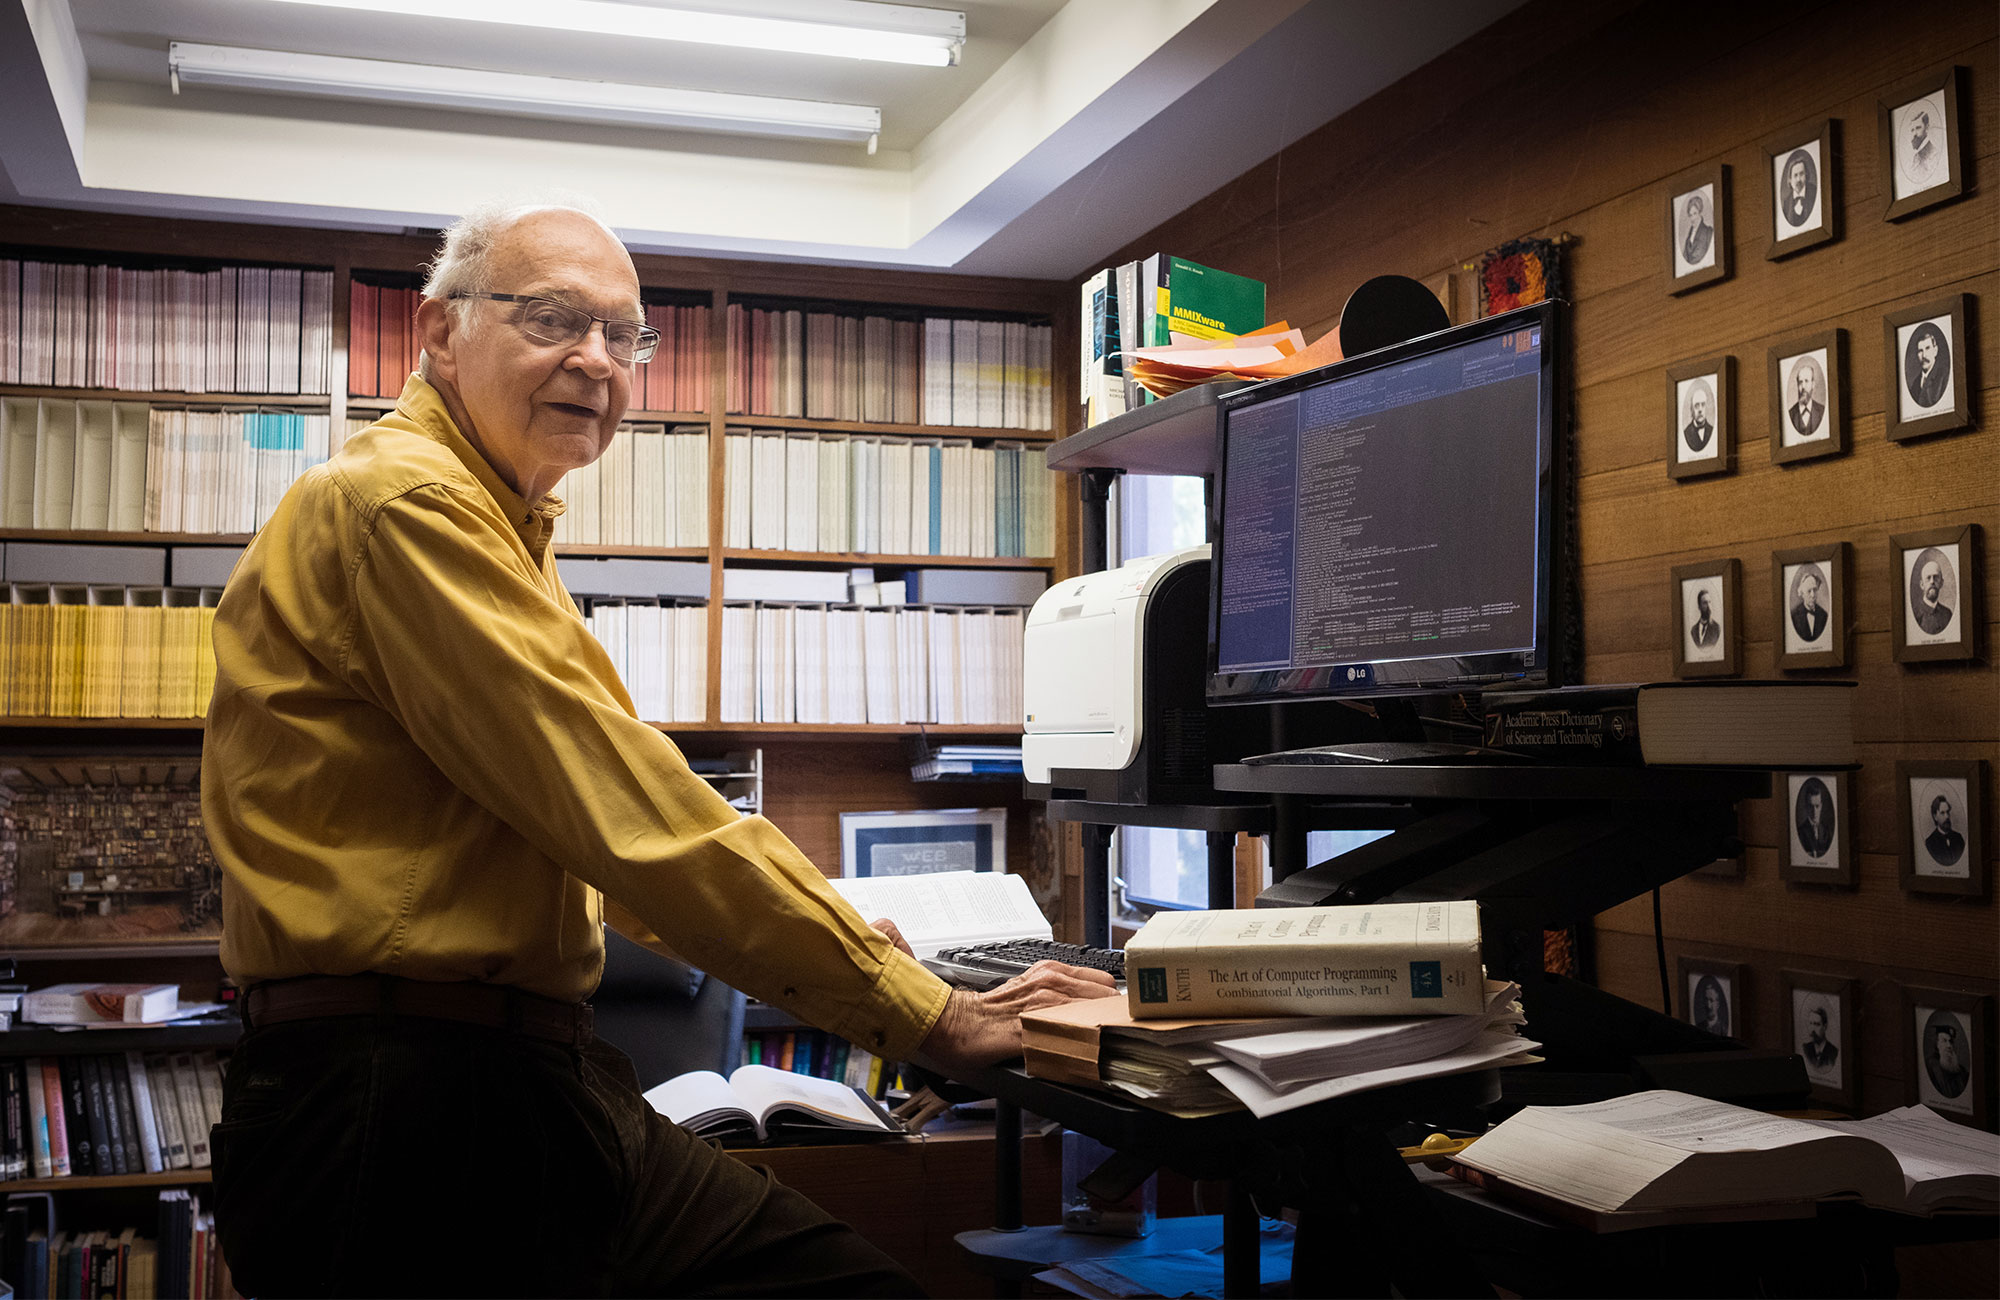 Photo of Donald Knuth at a computer in his home, in front of shelves of books and a wall full of portraits